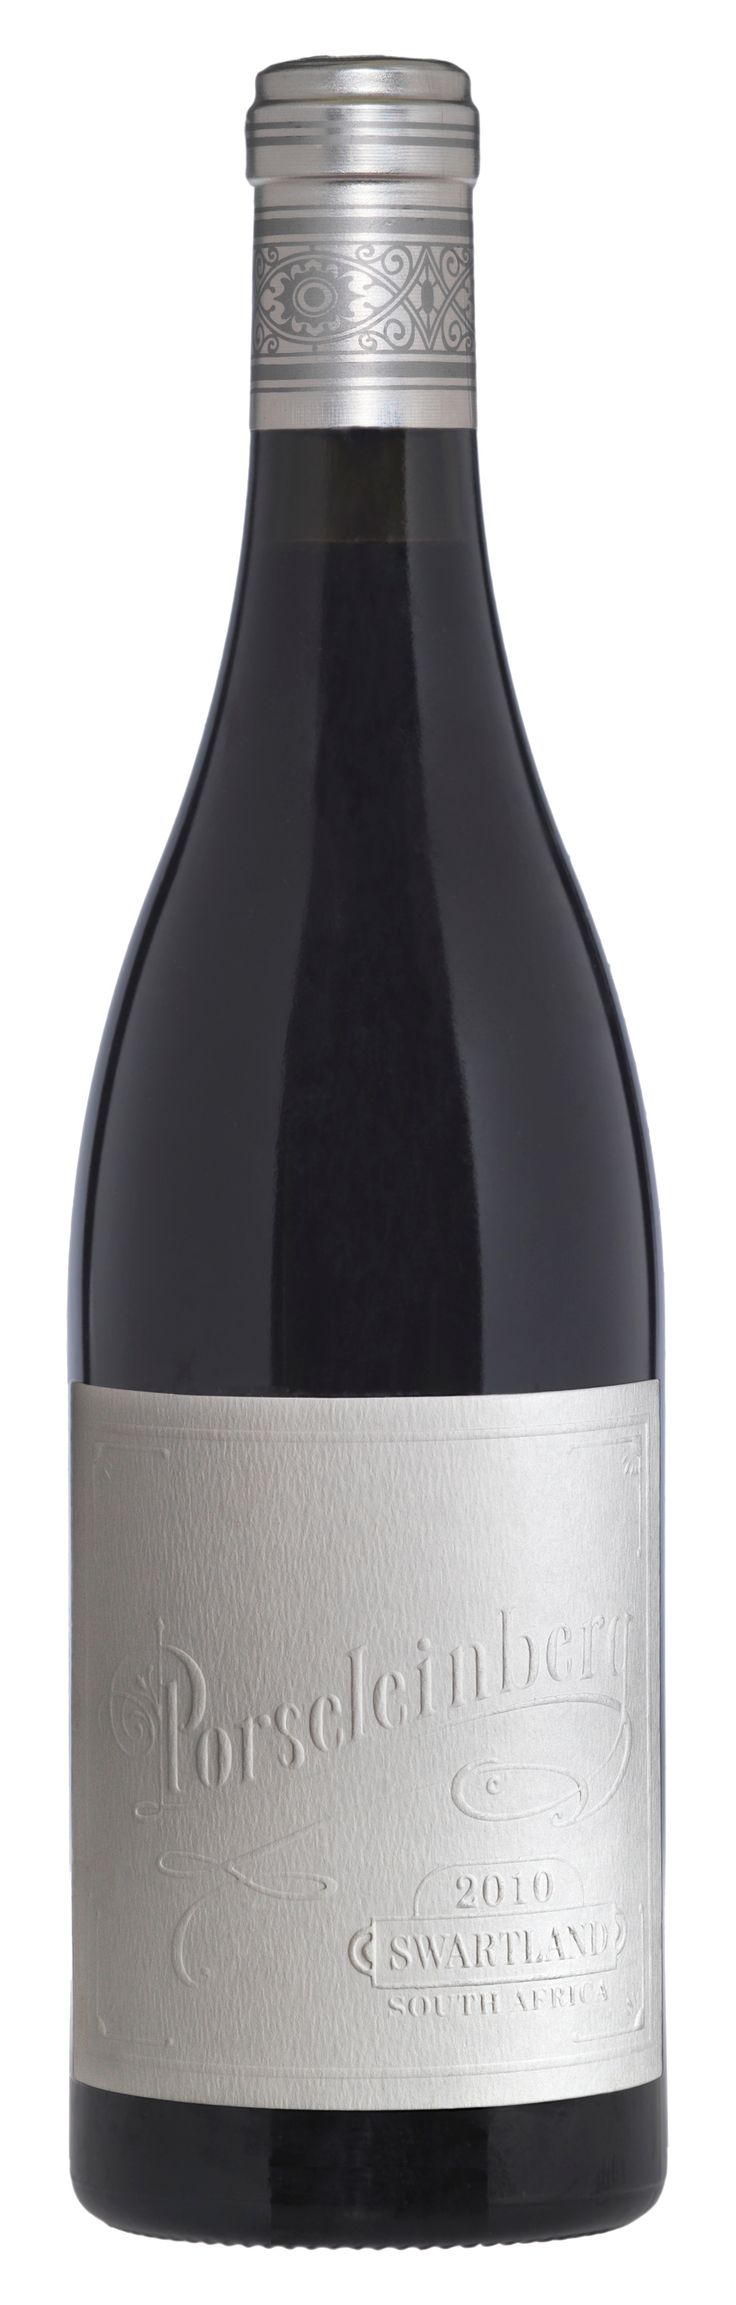 Porseleinberg, Syrah, Swartland, South Africa